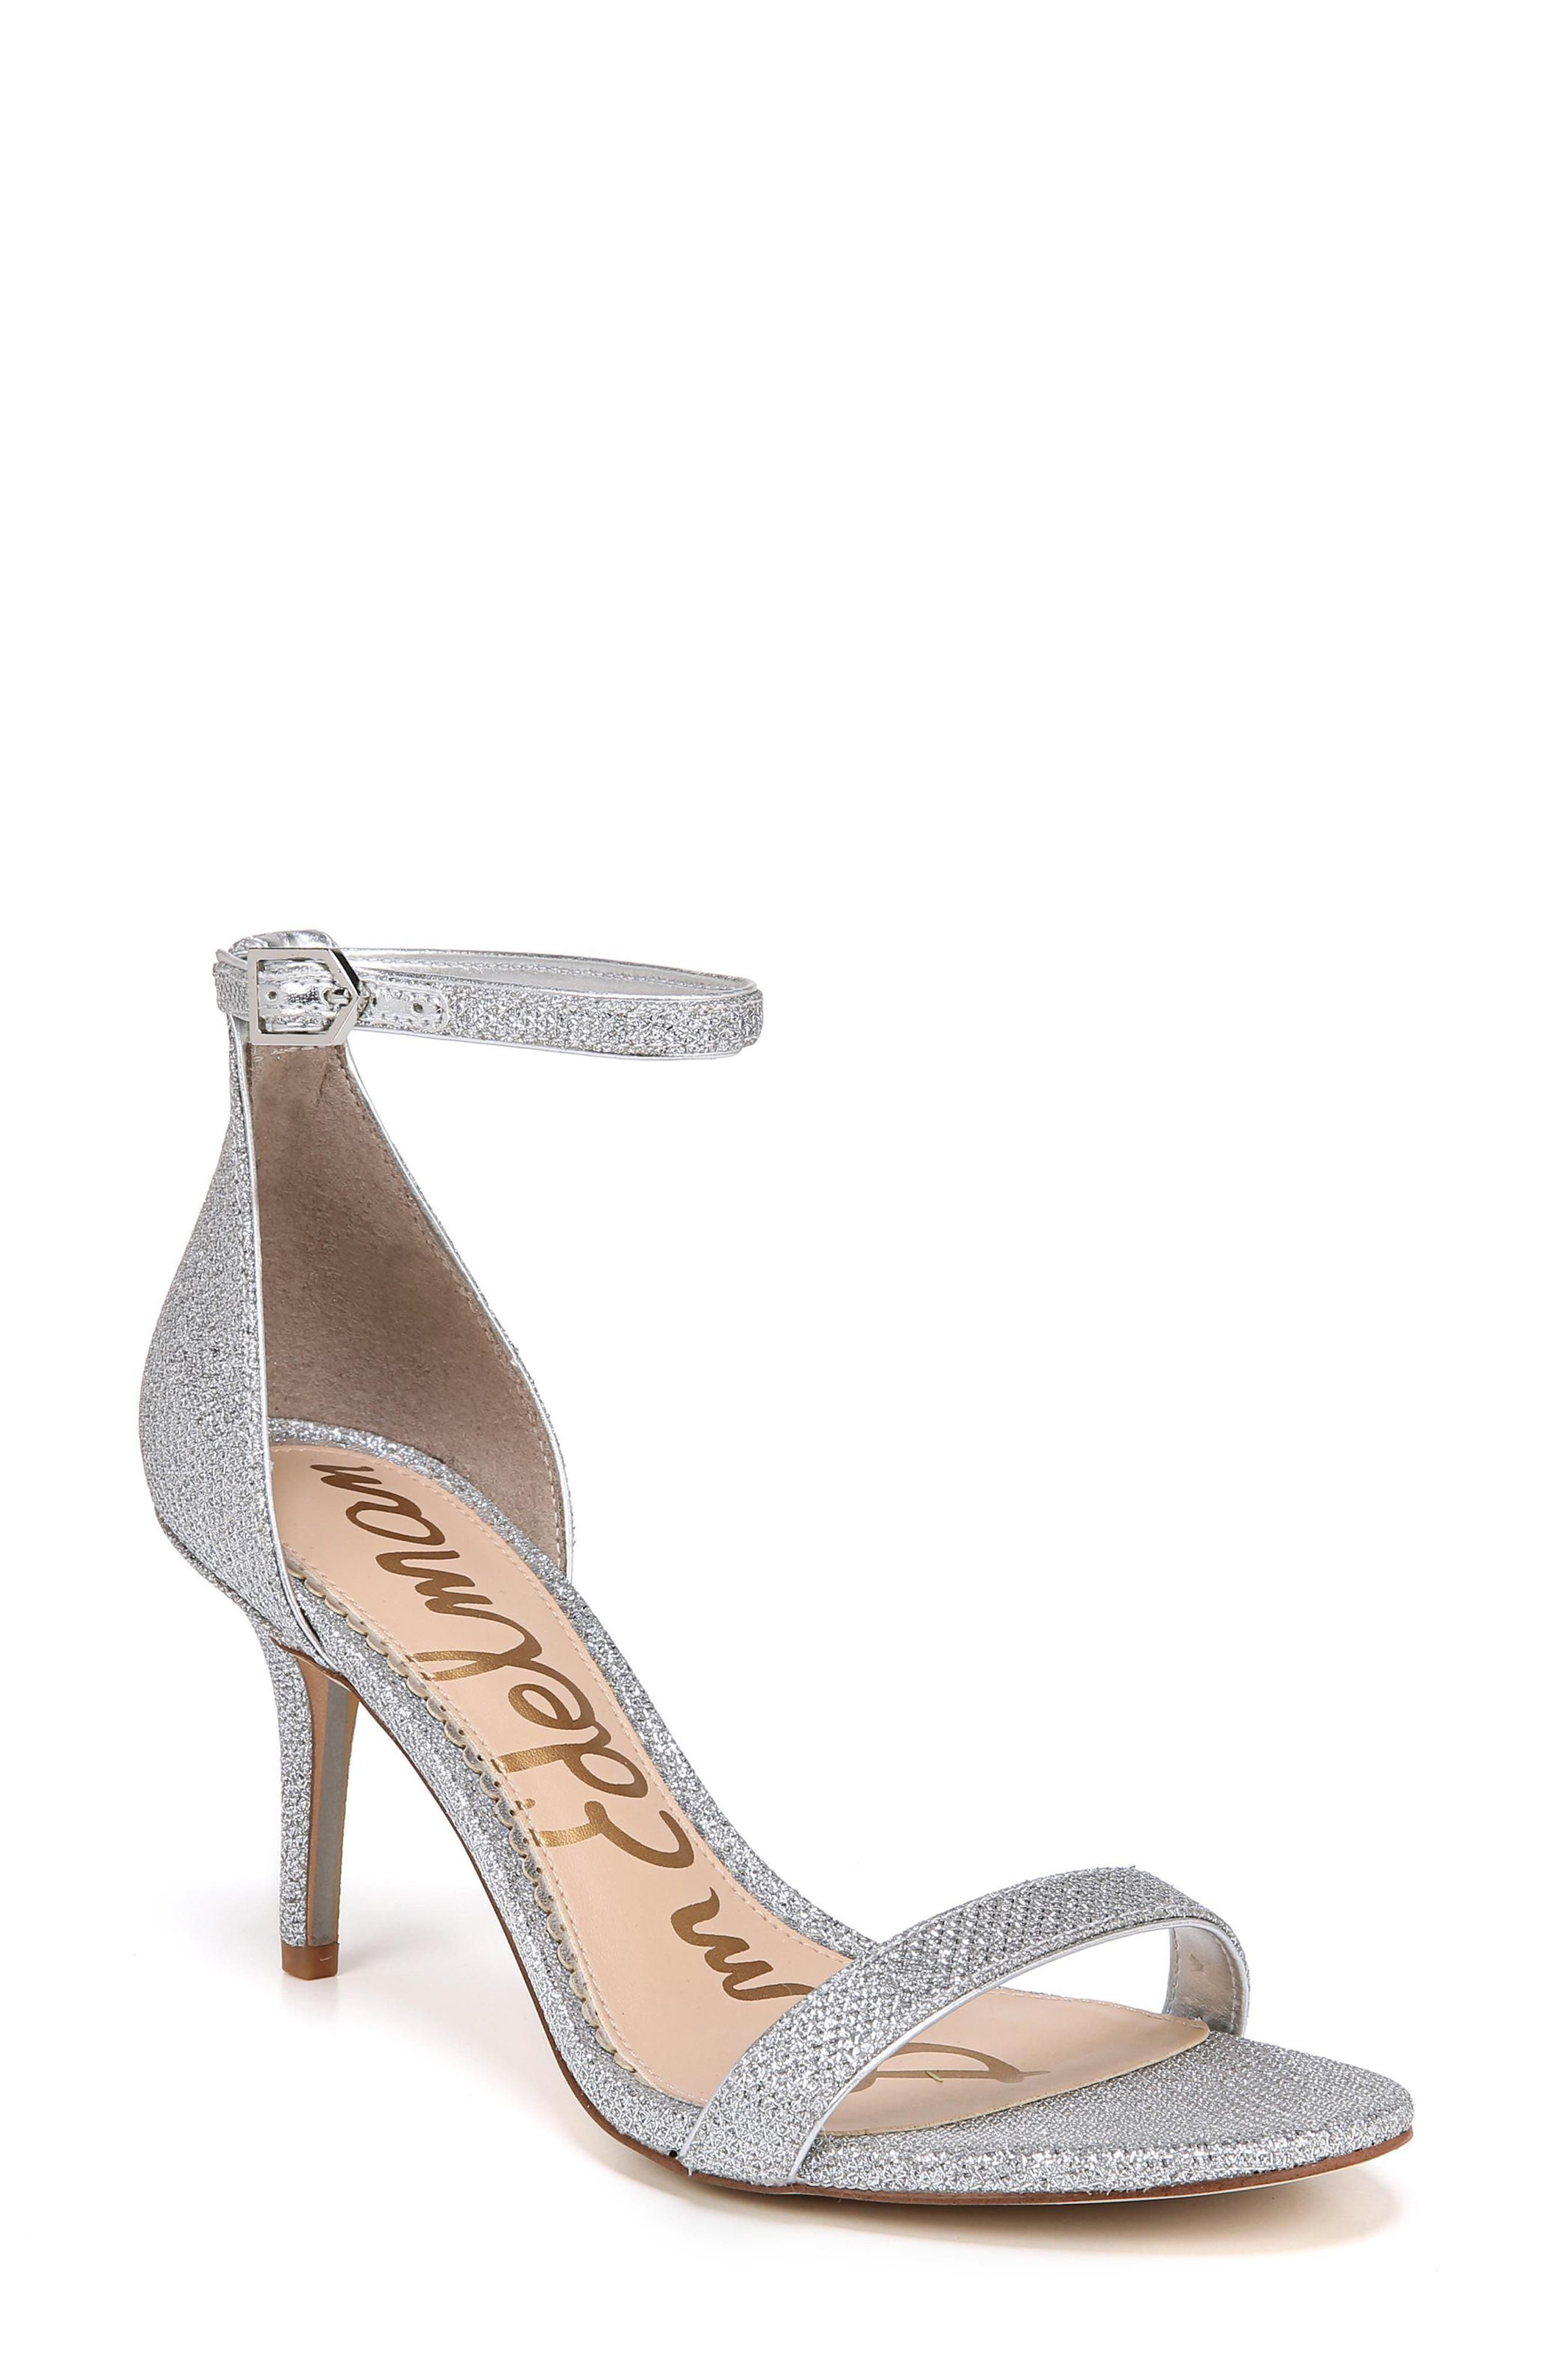 'Patti' Ankle Strap Sandal,                         Main,                         color, SOFT SILVER FABRIC